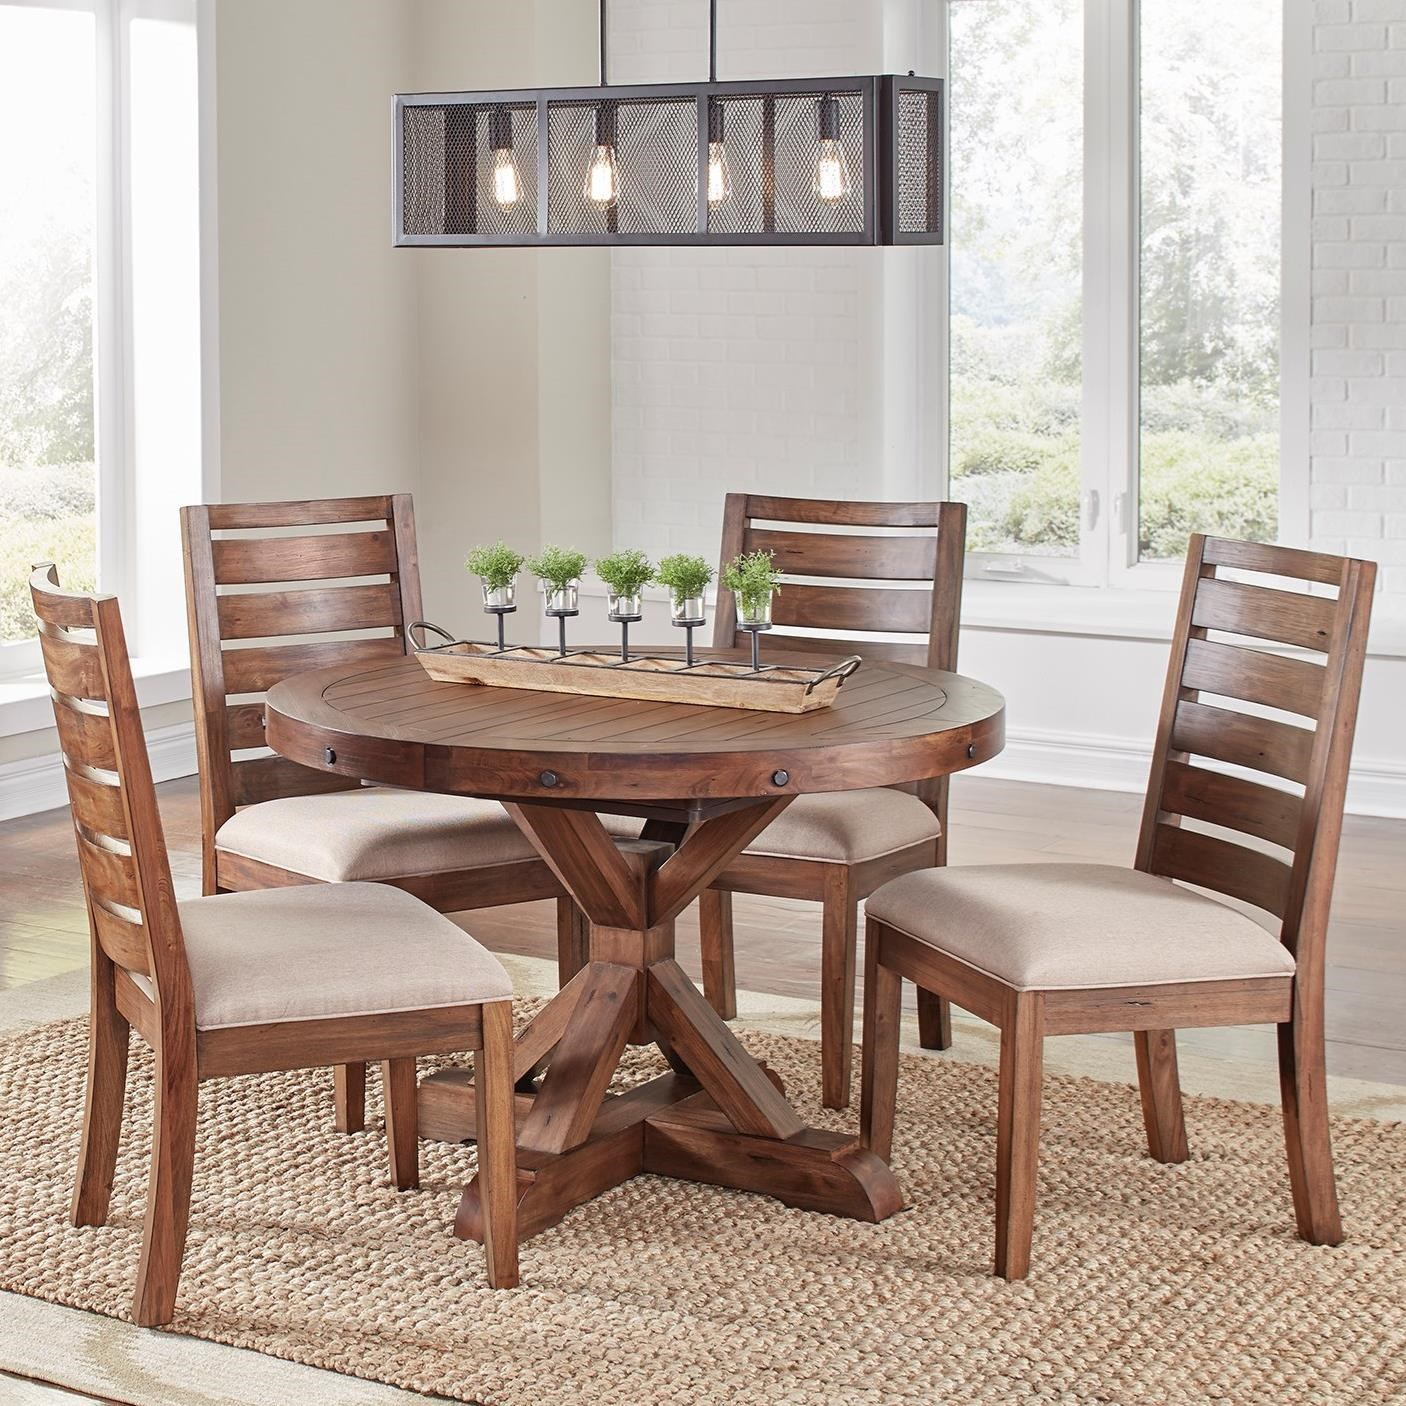 5 Piece Dining Set By Aamerica Wolf Furniture